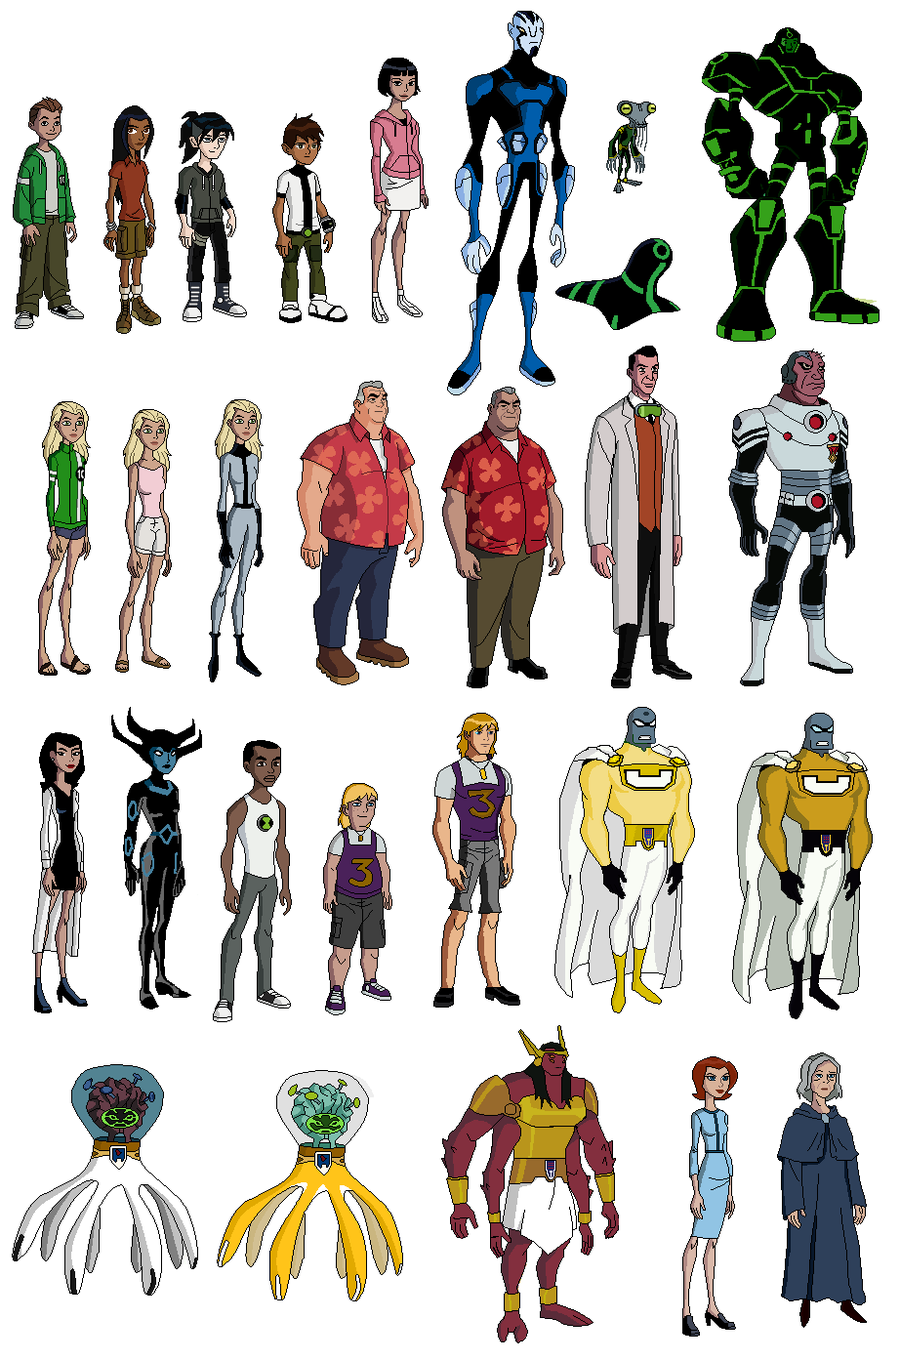 Kevin Crossley Character Design Pdf : Ben characters picture wallpaper